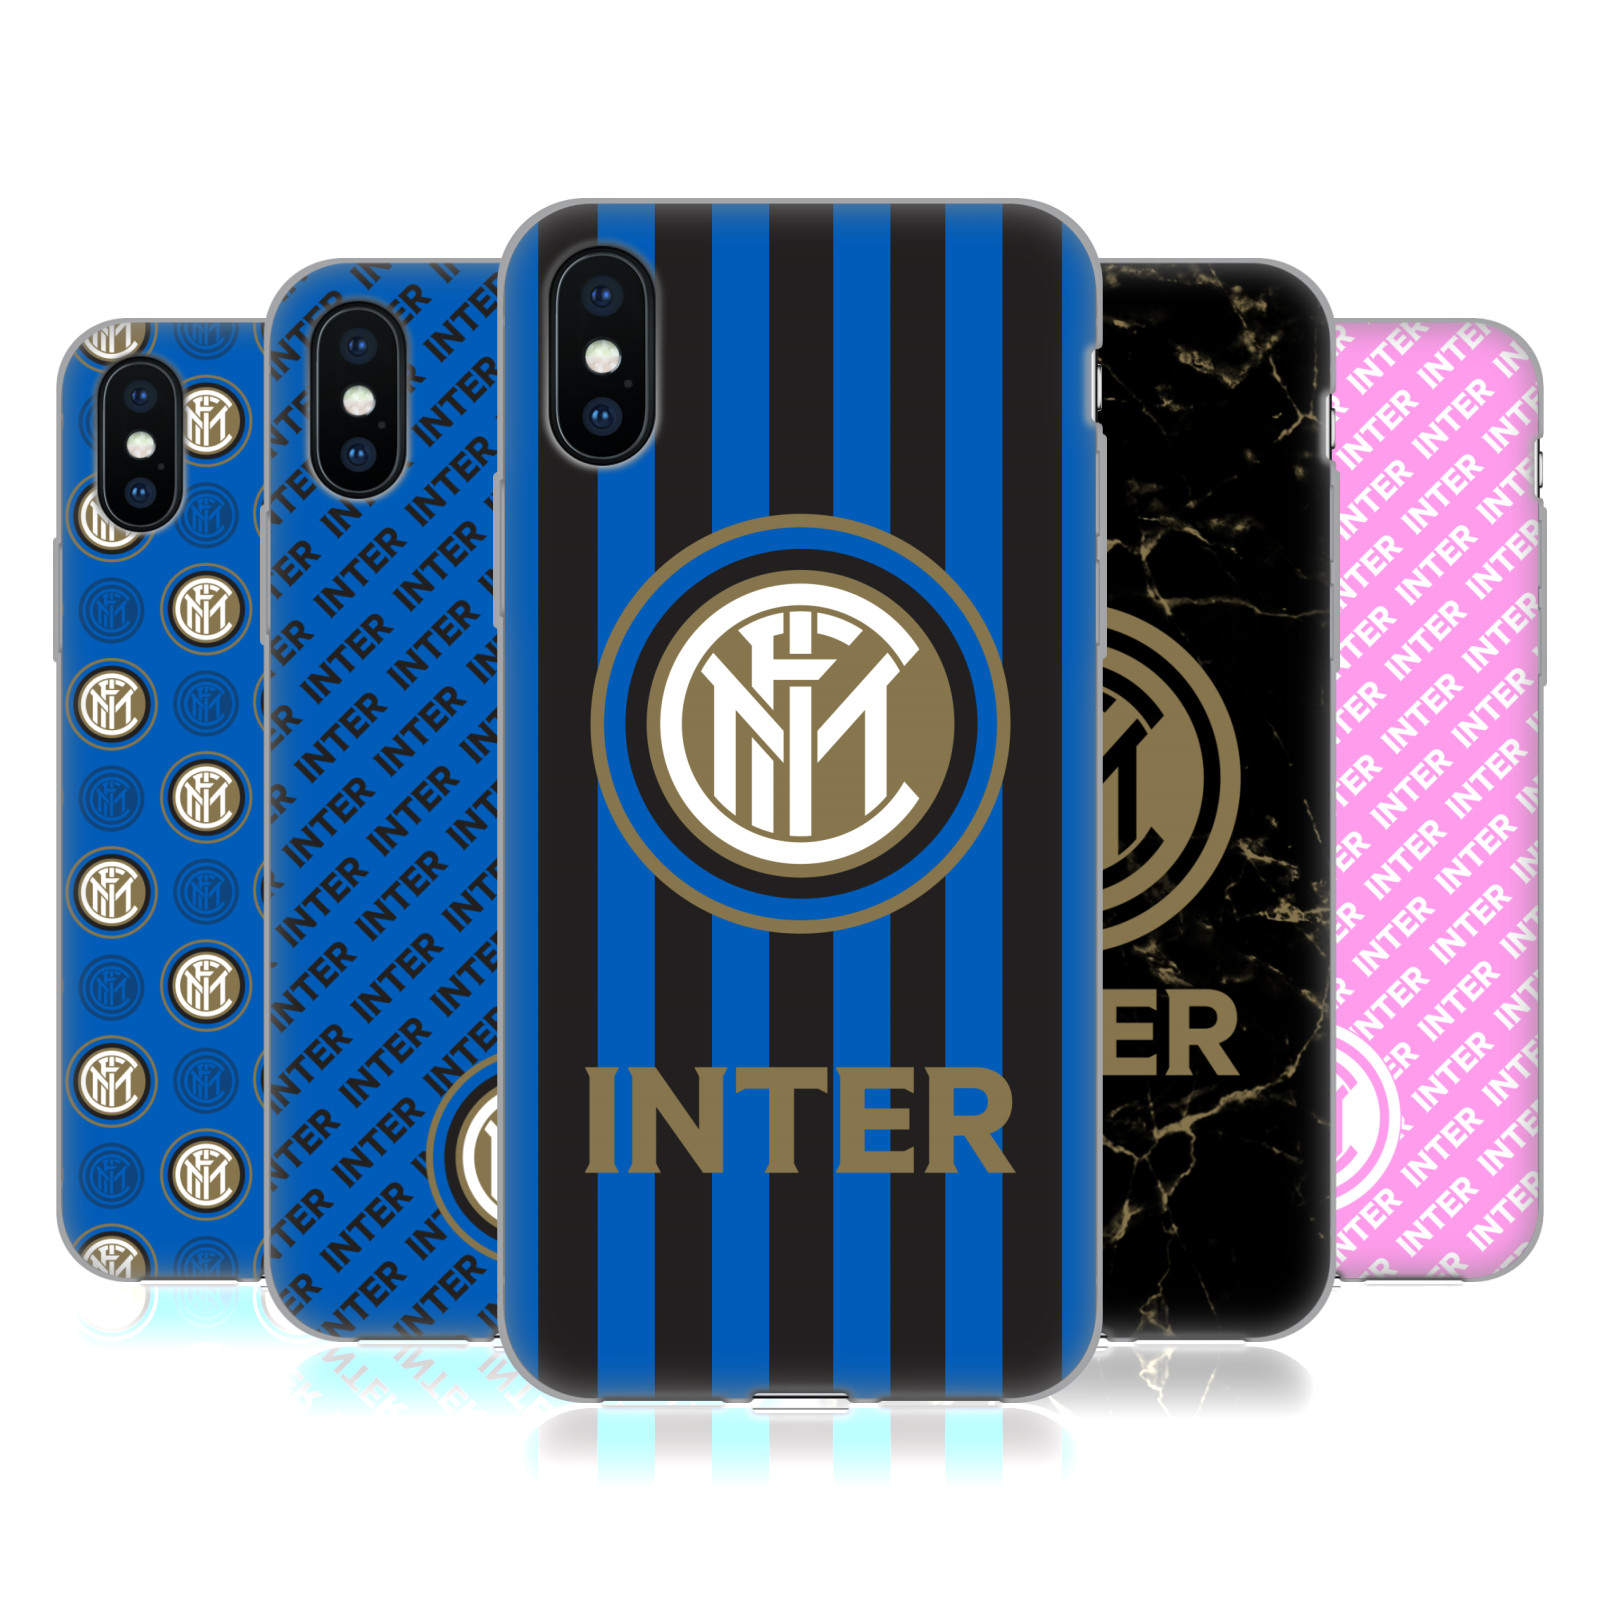 Inter Milan <!--translate-lineup-->2017/18 Crest Patterns<!--translate-lineup-->